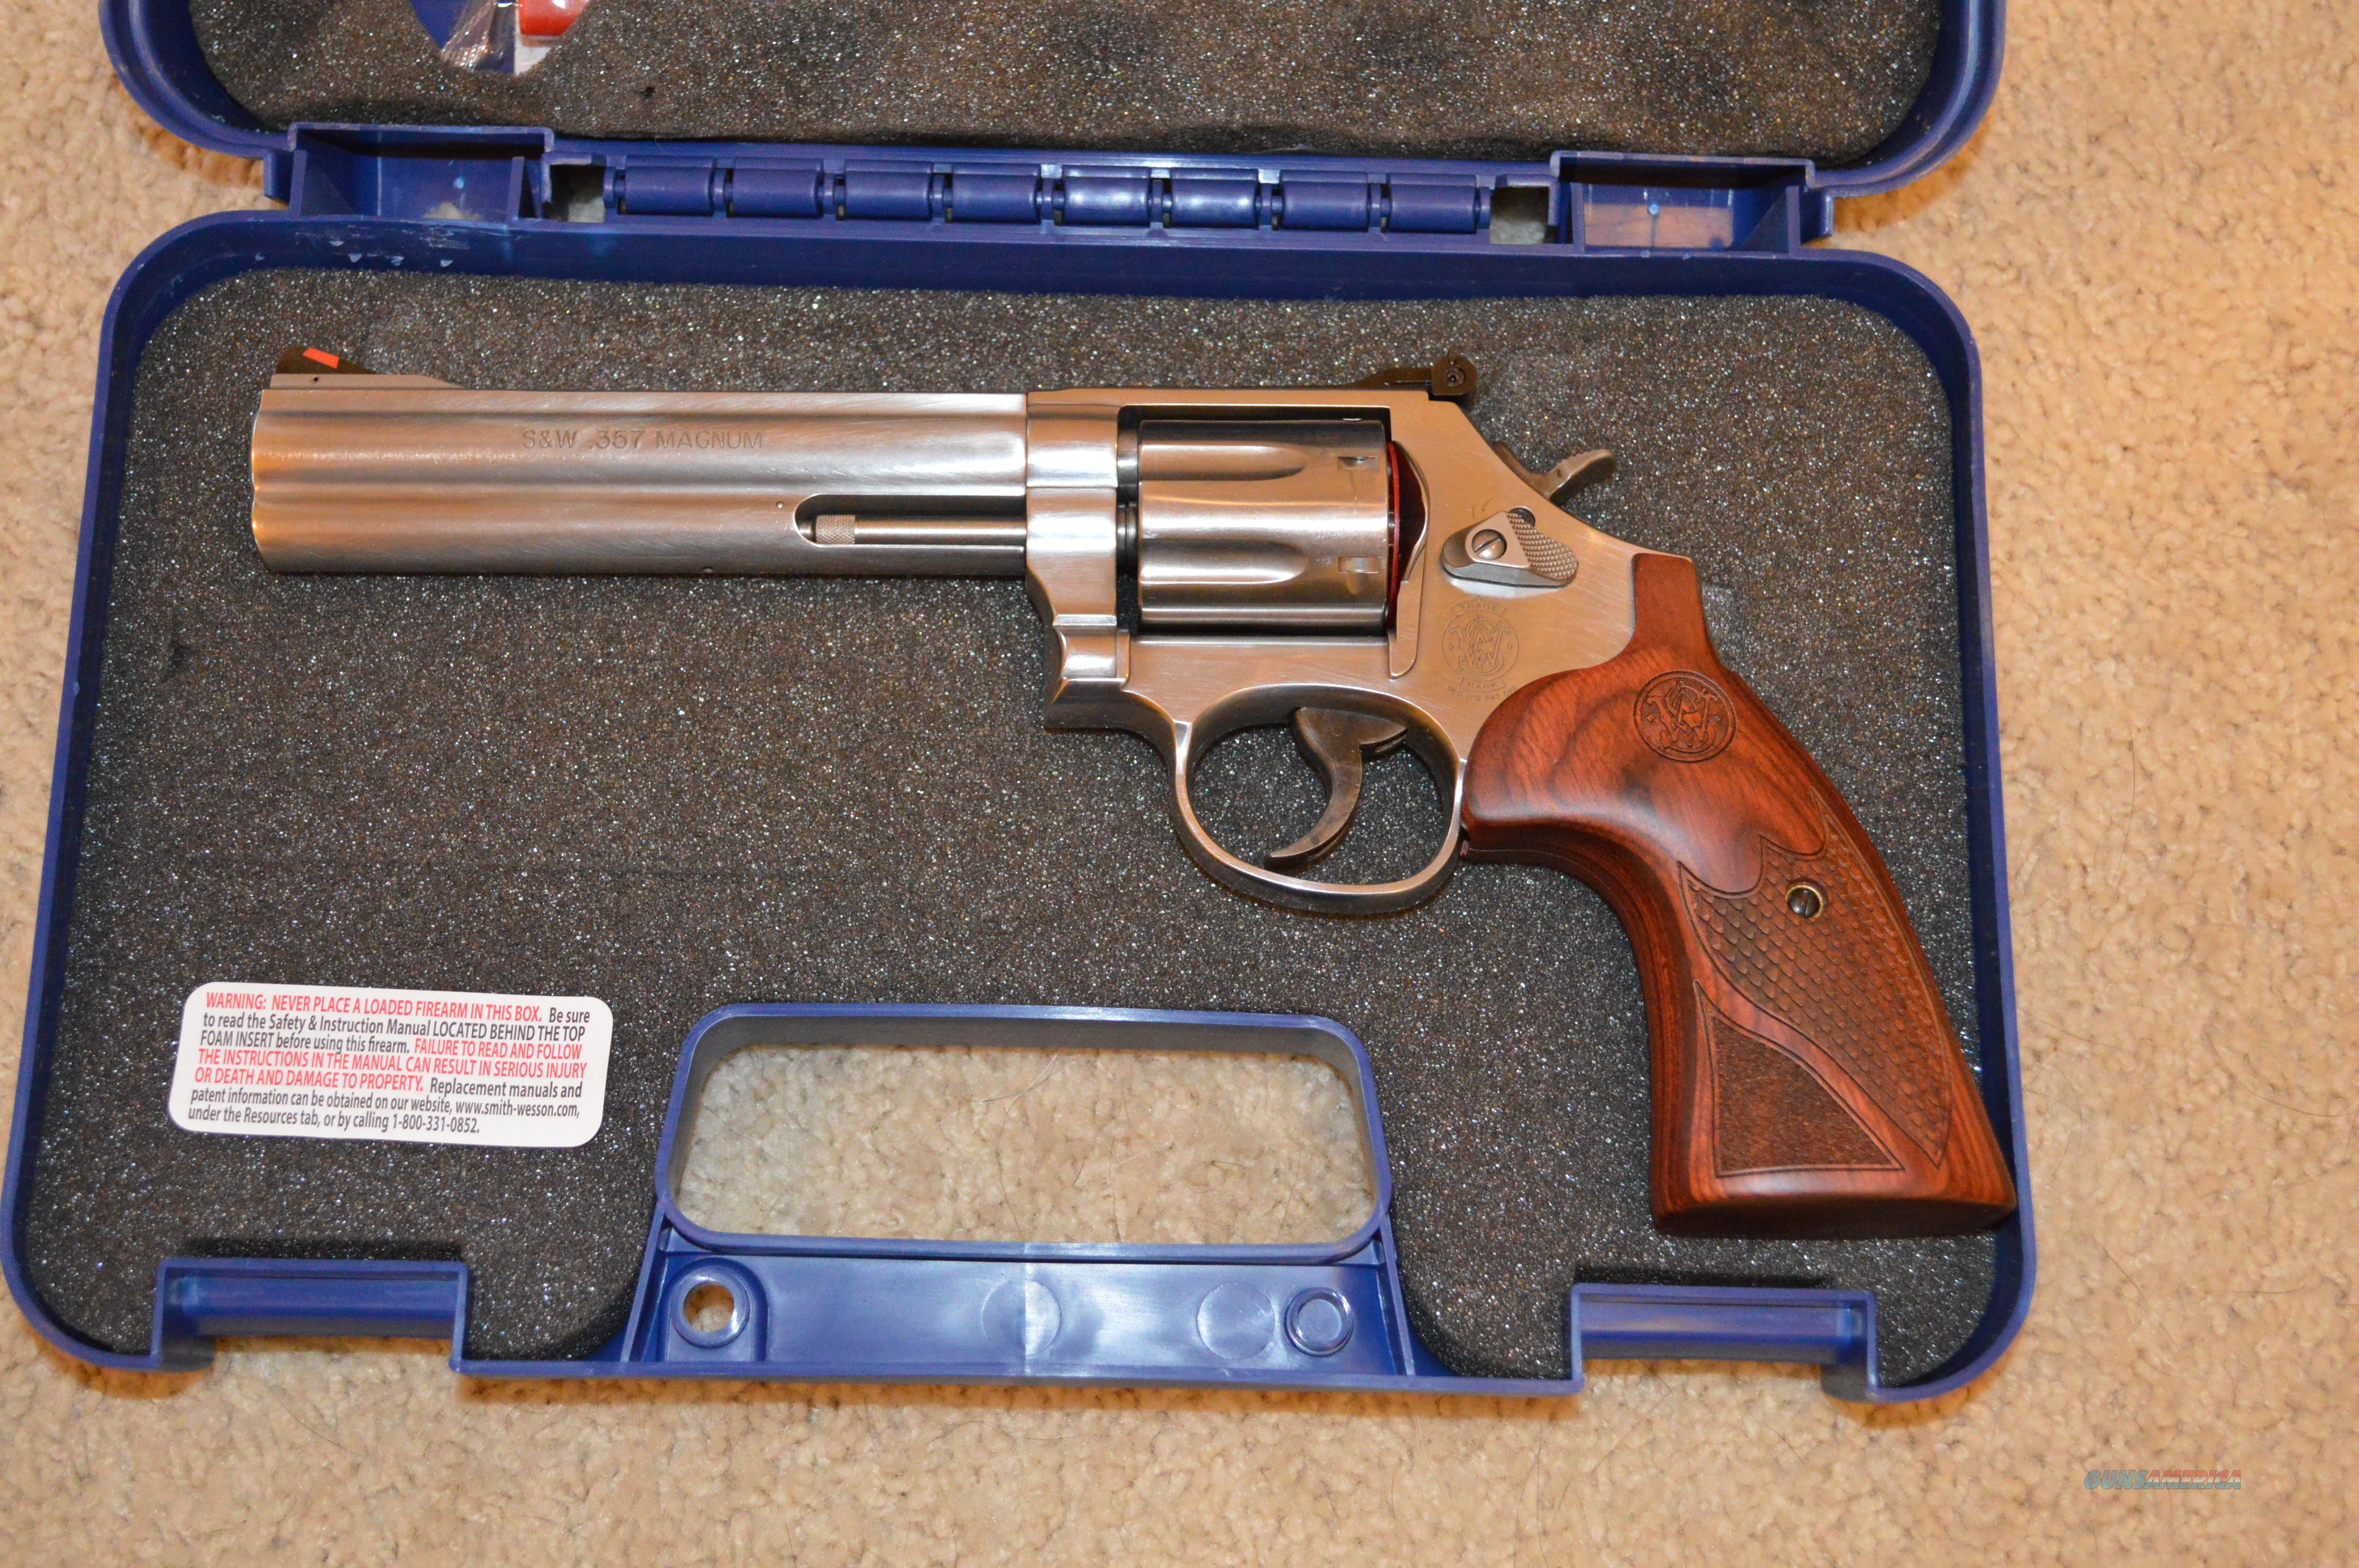 Clearance Sale! Smith and Wesson 686 Plus Deluxe